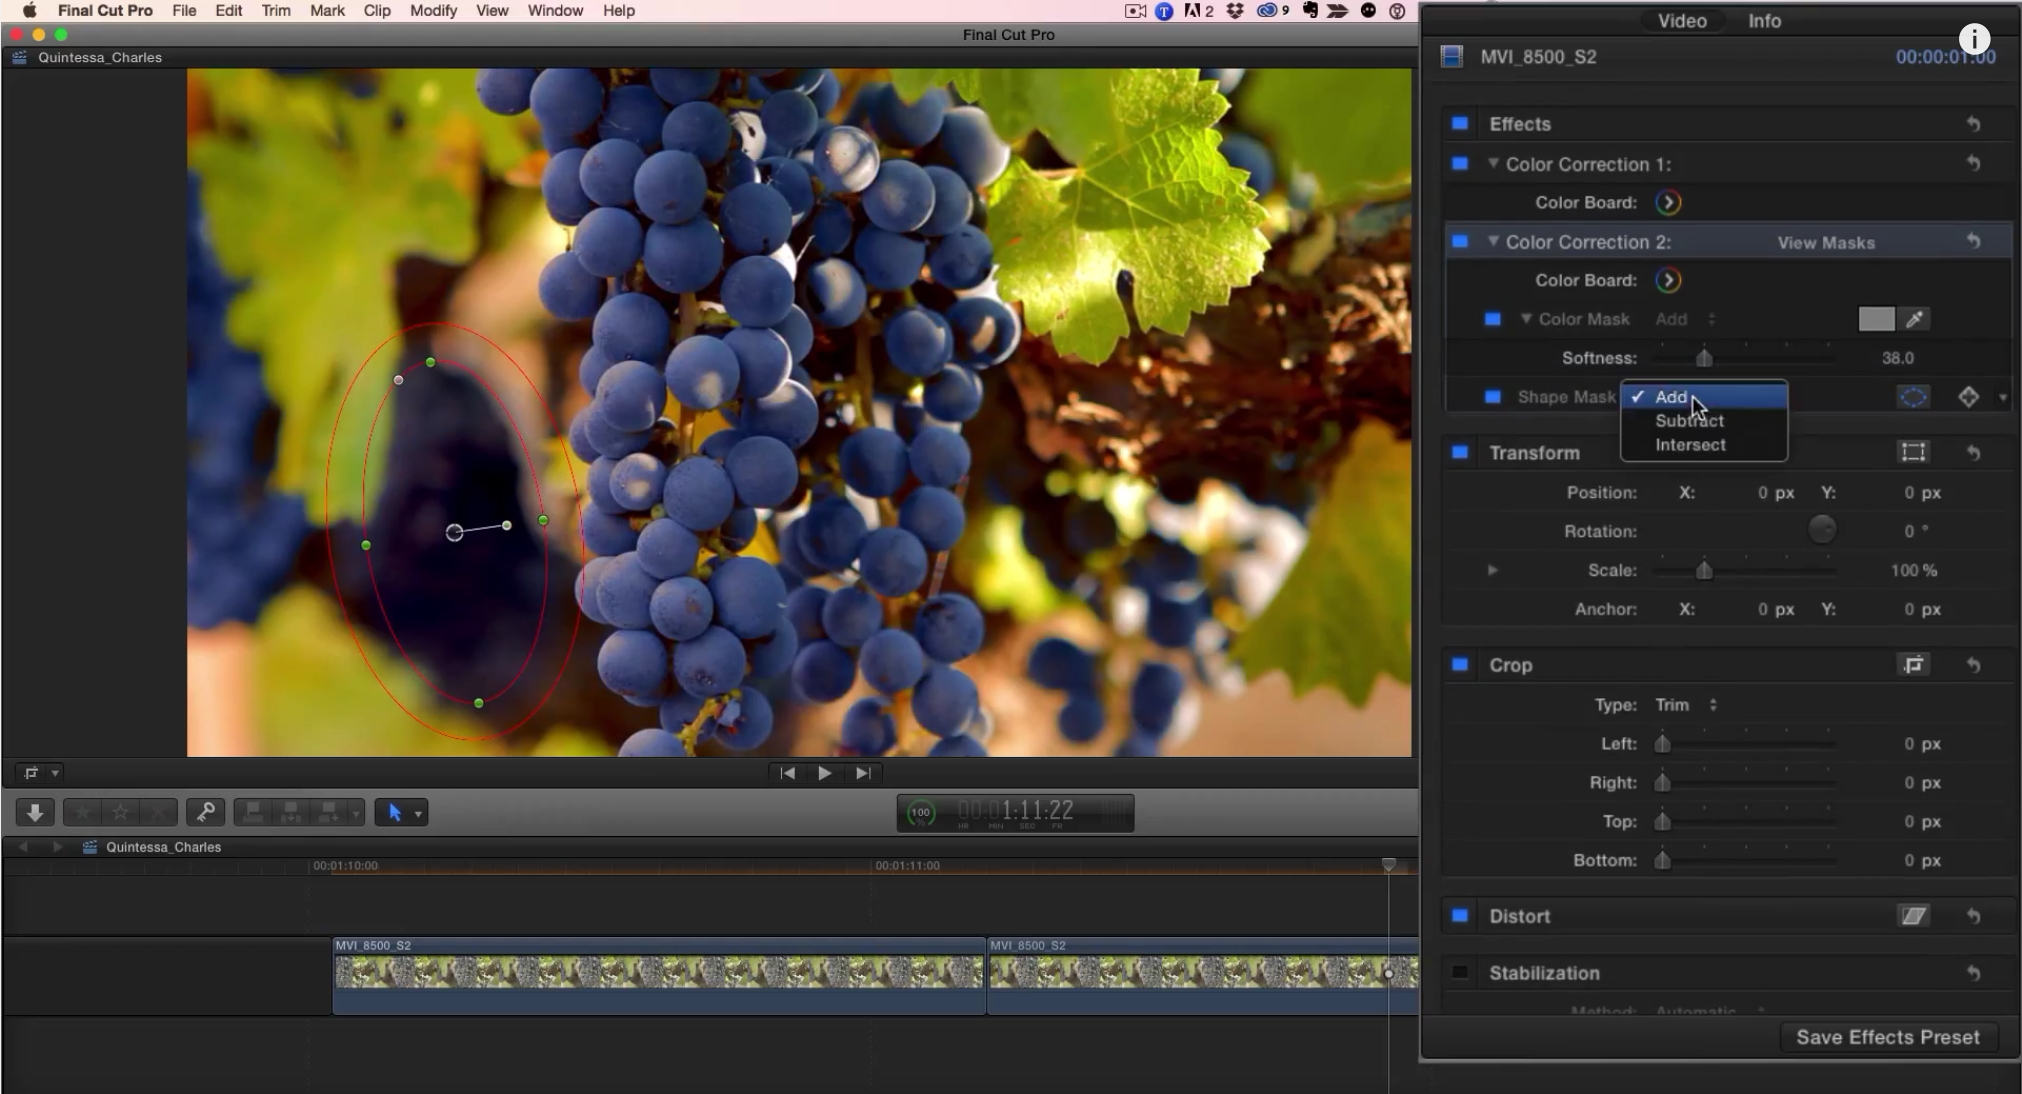 Punching Up a Shot in Final Cut Pro X by Mark Spencer